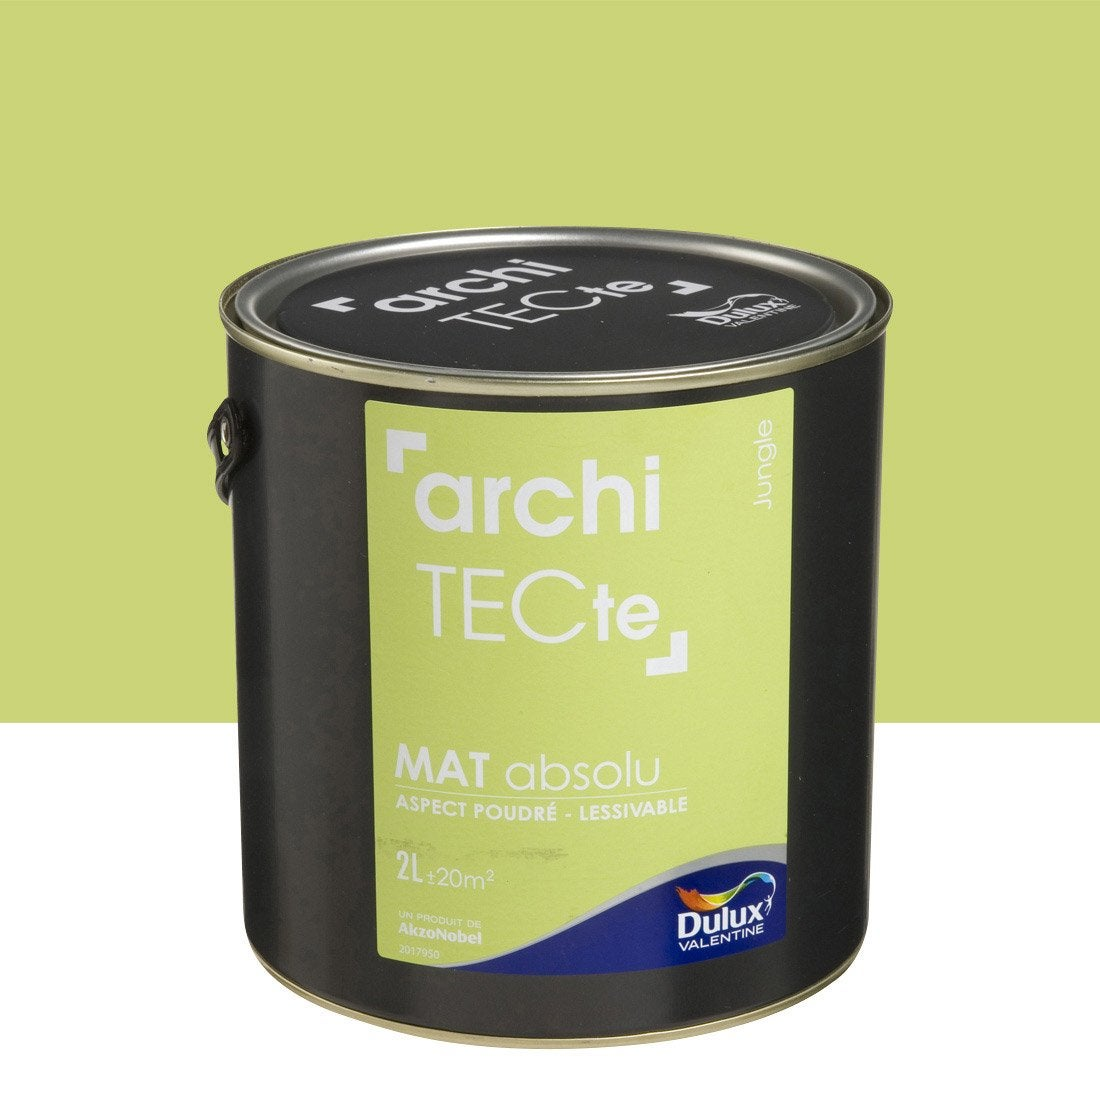 peinture vert jungle dulux architecte 2 l leroy merlin